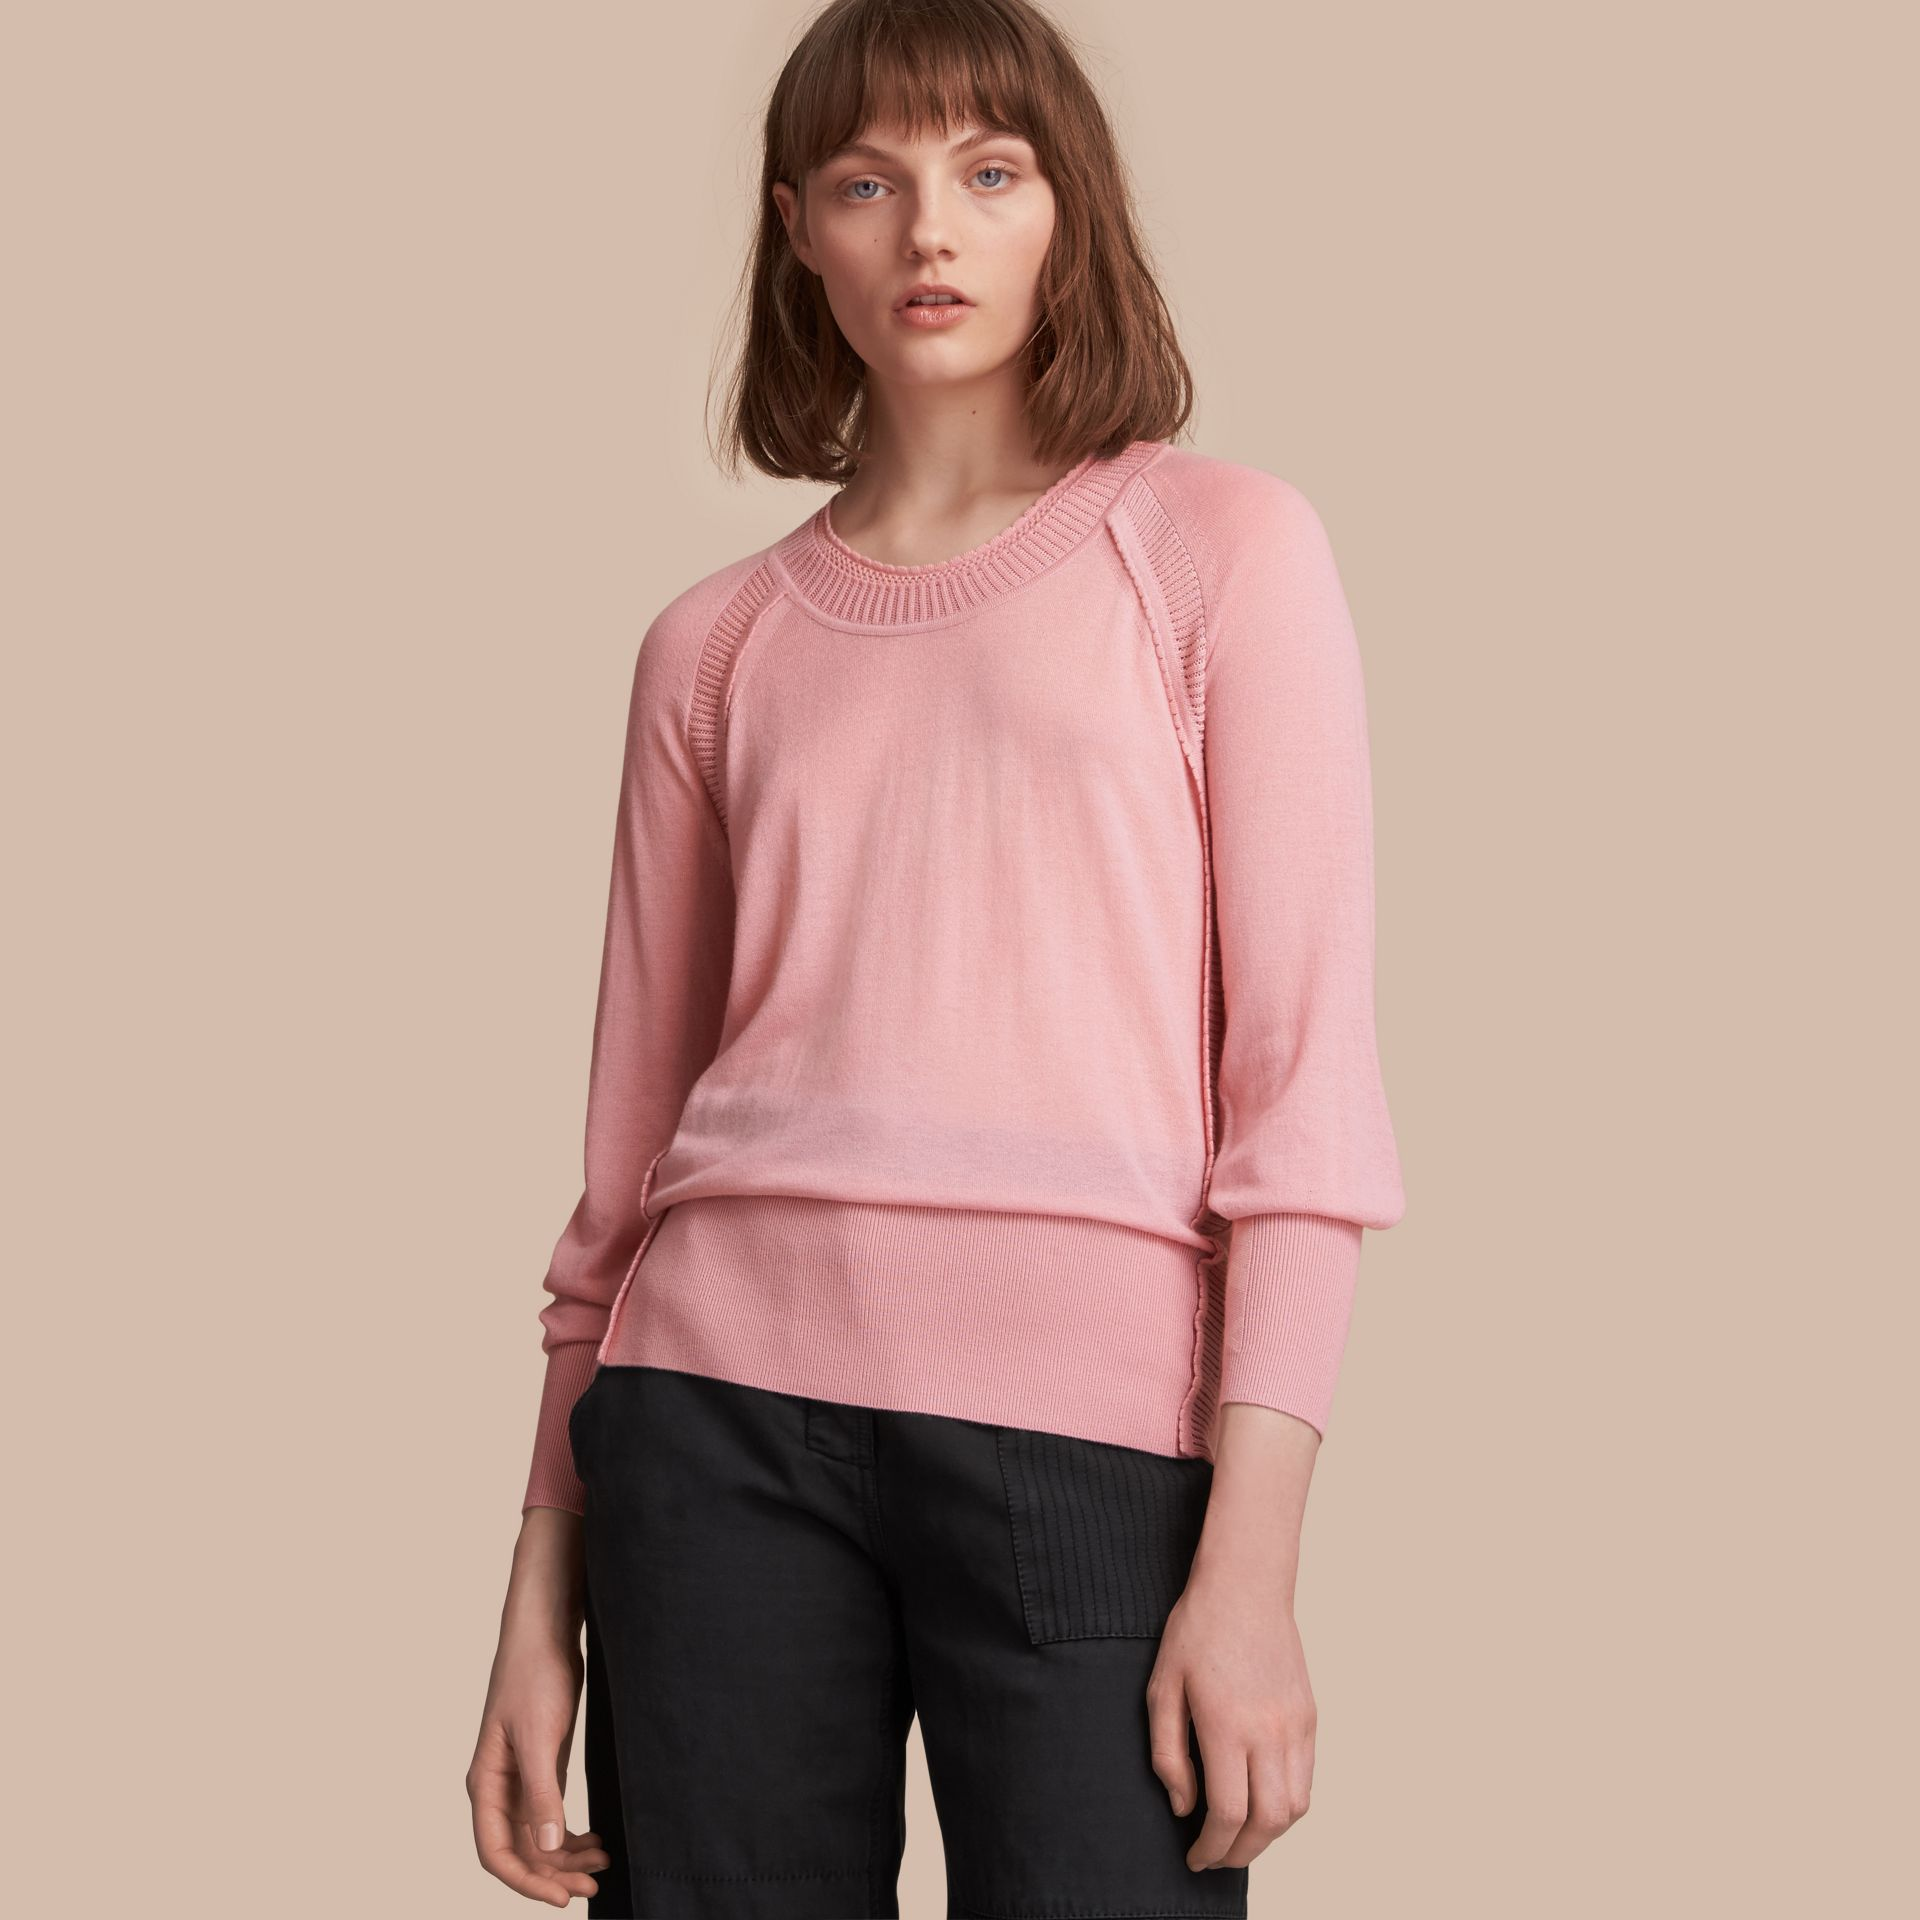 Open-knit Detail Cashmere Crew Neck Sweater in Apricot Pink - Women | Burberry - gallery image 1